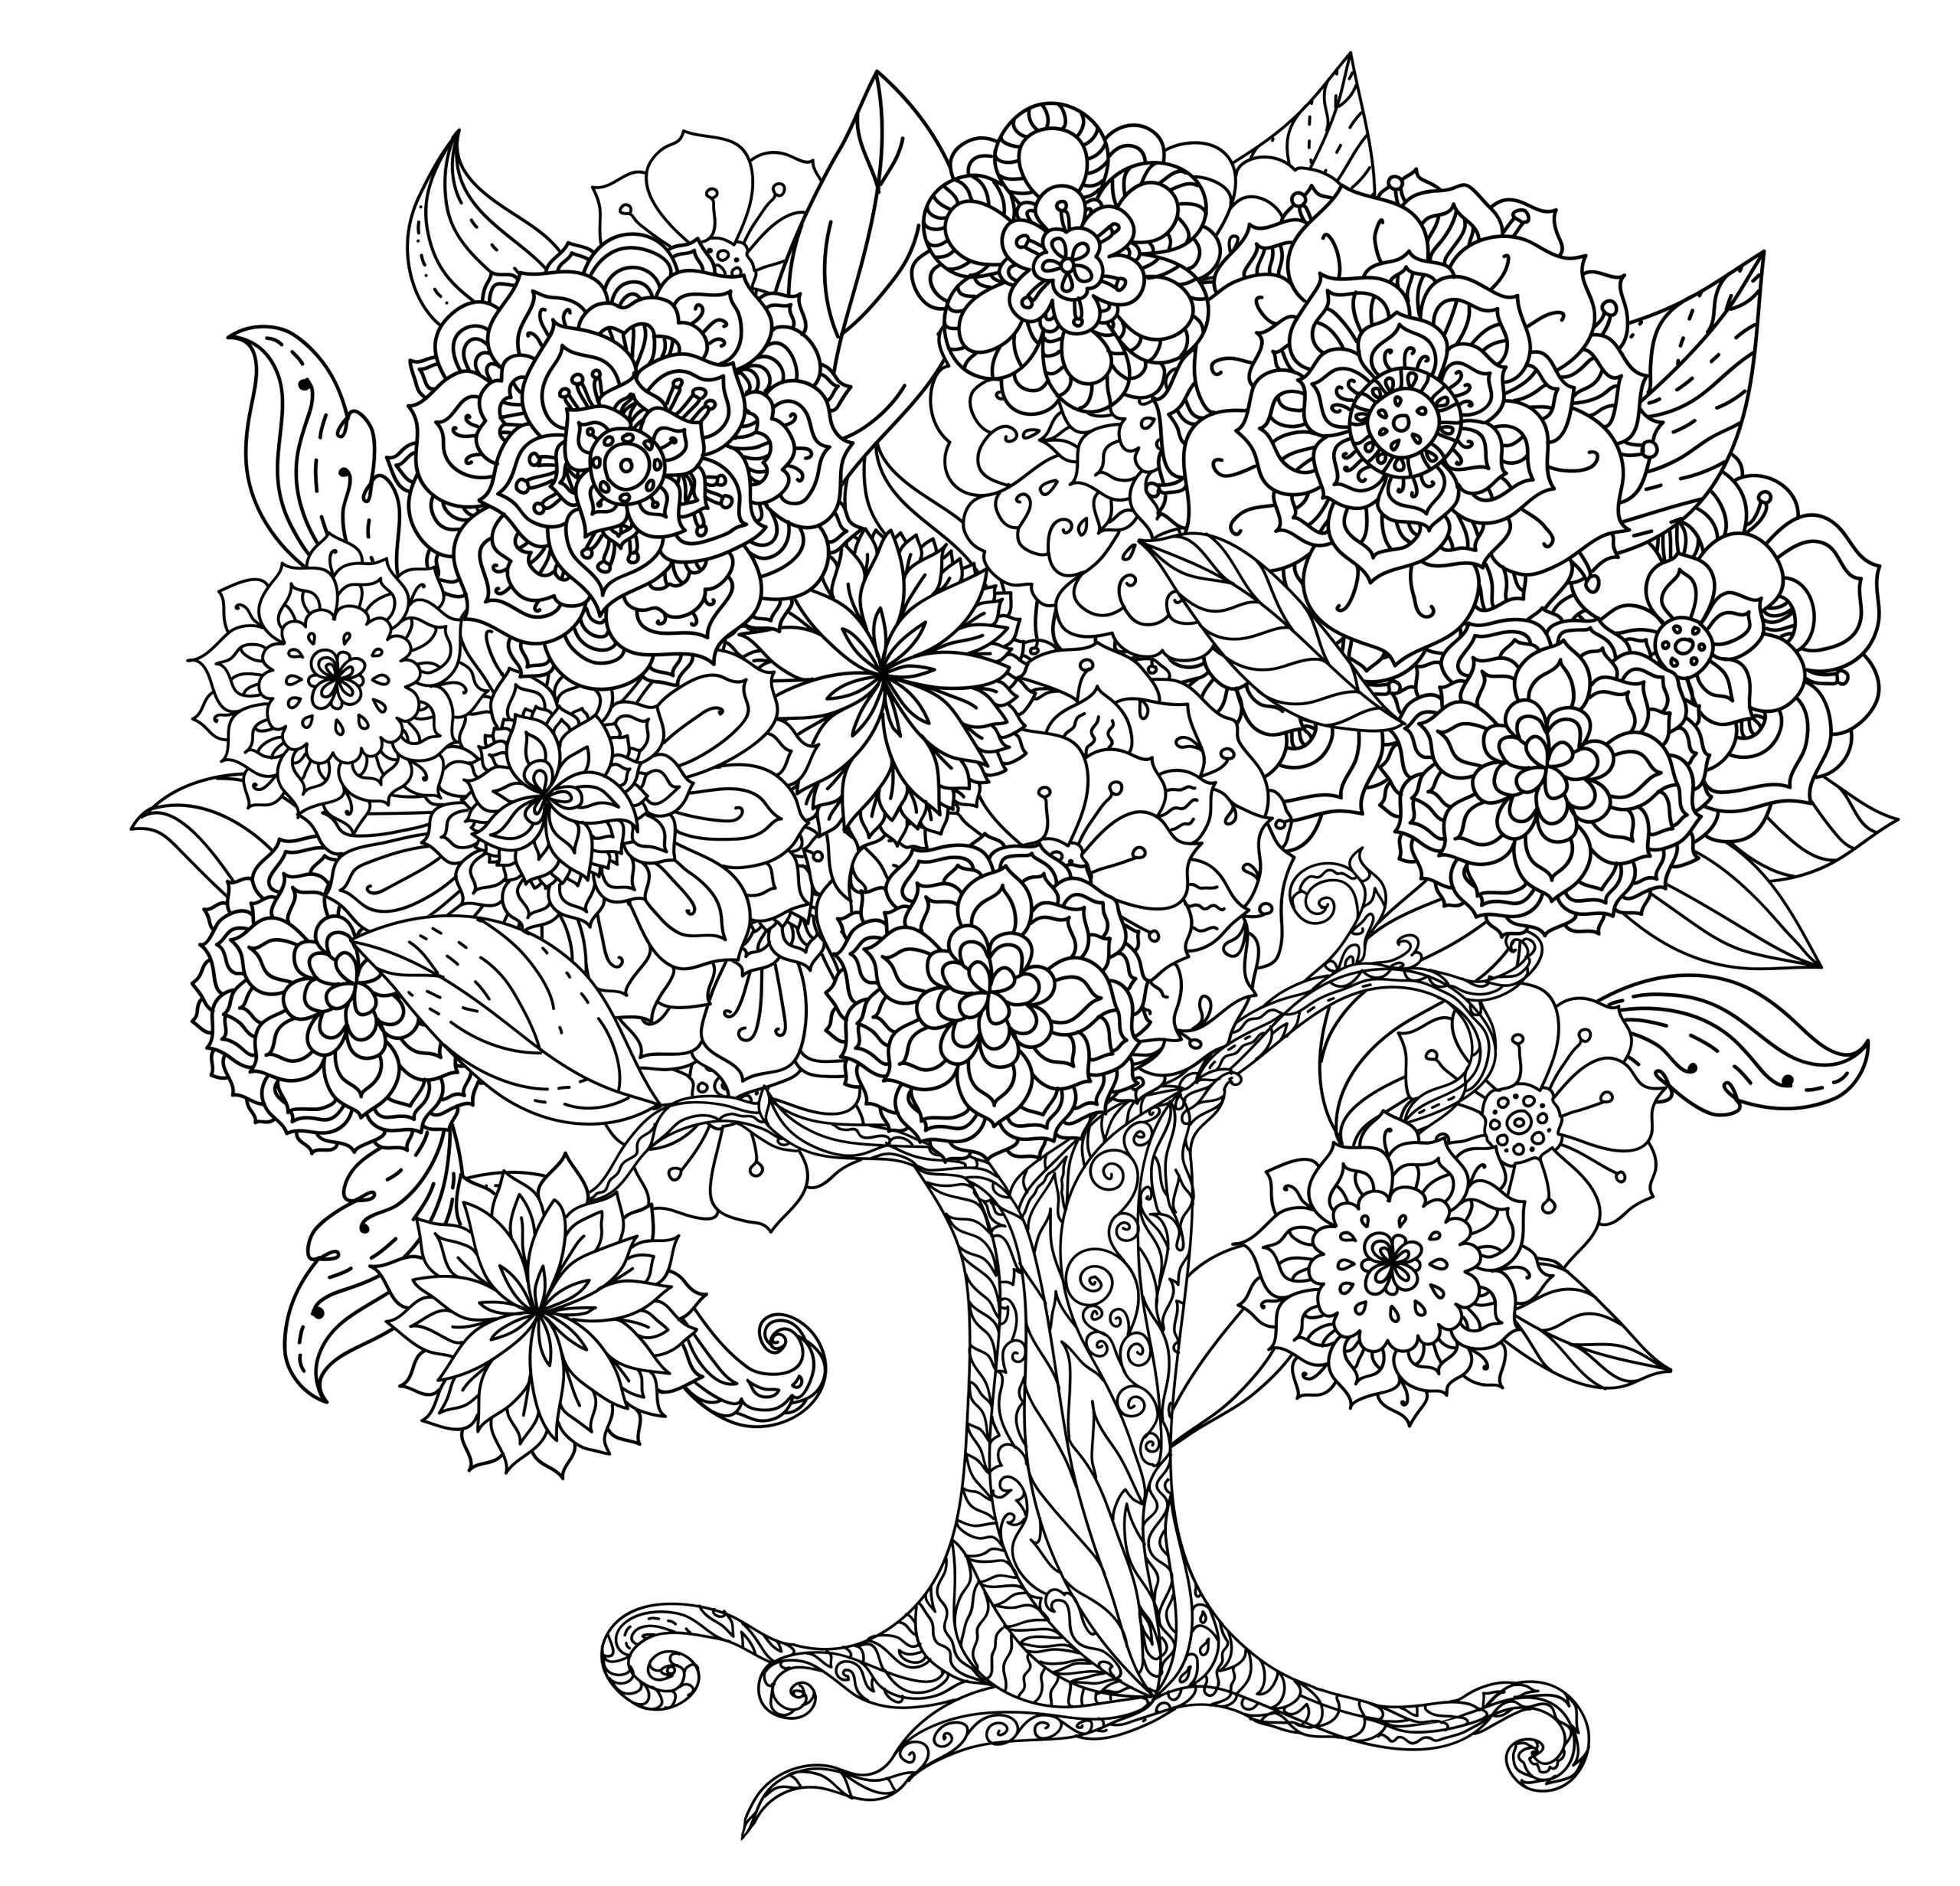 Amazon.com: Tranquil Trees Adult Coloring Book (31 stress-relieving ...